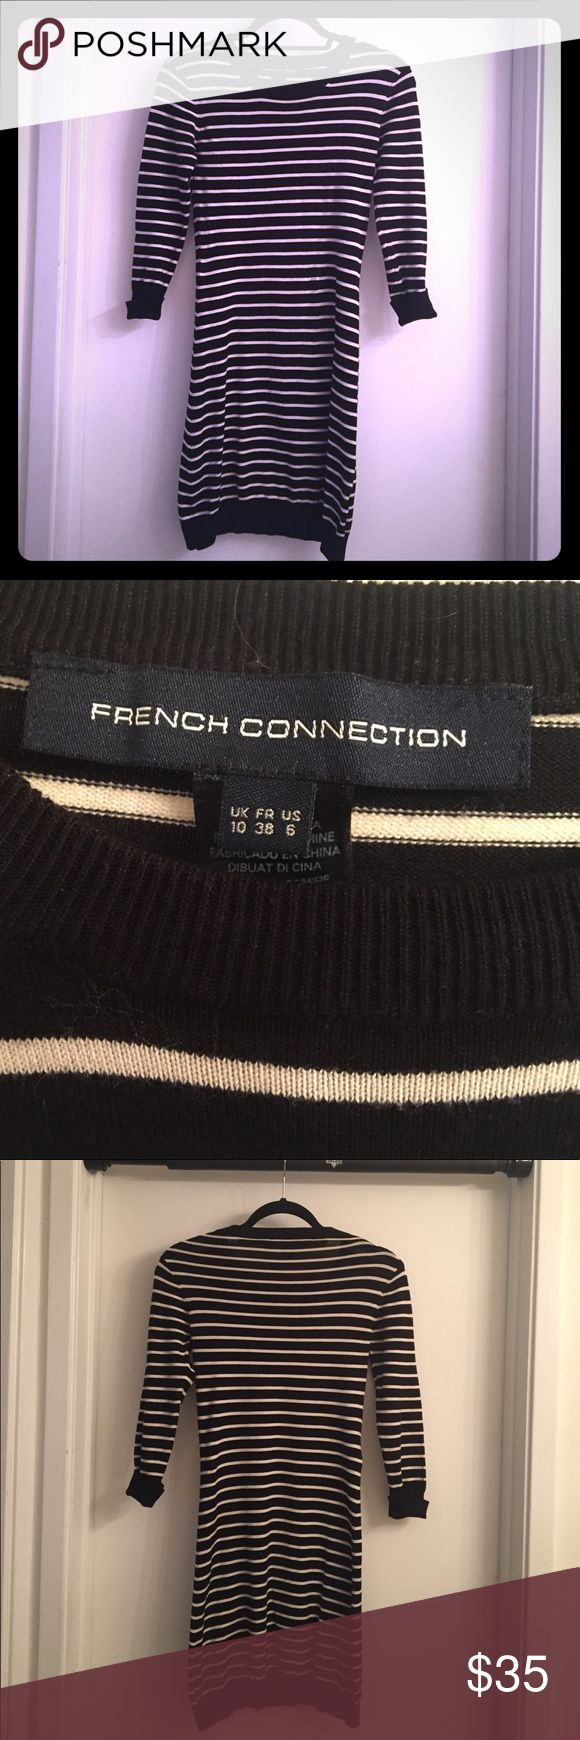 French Connection black / white striped dress French Connection black / white striped light weight form fitting sweater dress is great with ankle boots, high boots, even with blazer & heels. Dress up or down and very feel sexy & comfortable with cuffed mid length sleeves. Lightly worn. Fits sizes 0-4. French Connection Dresses Mini